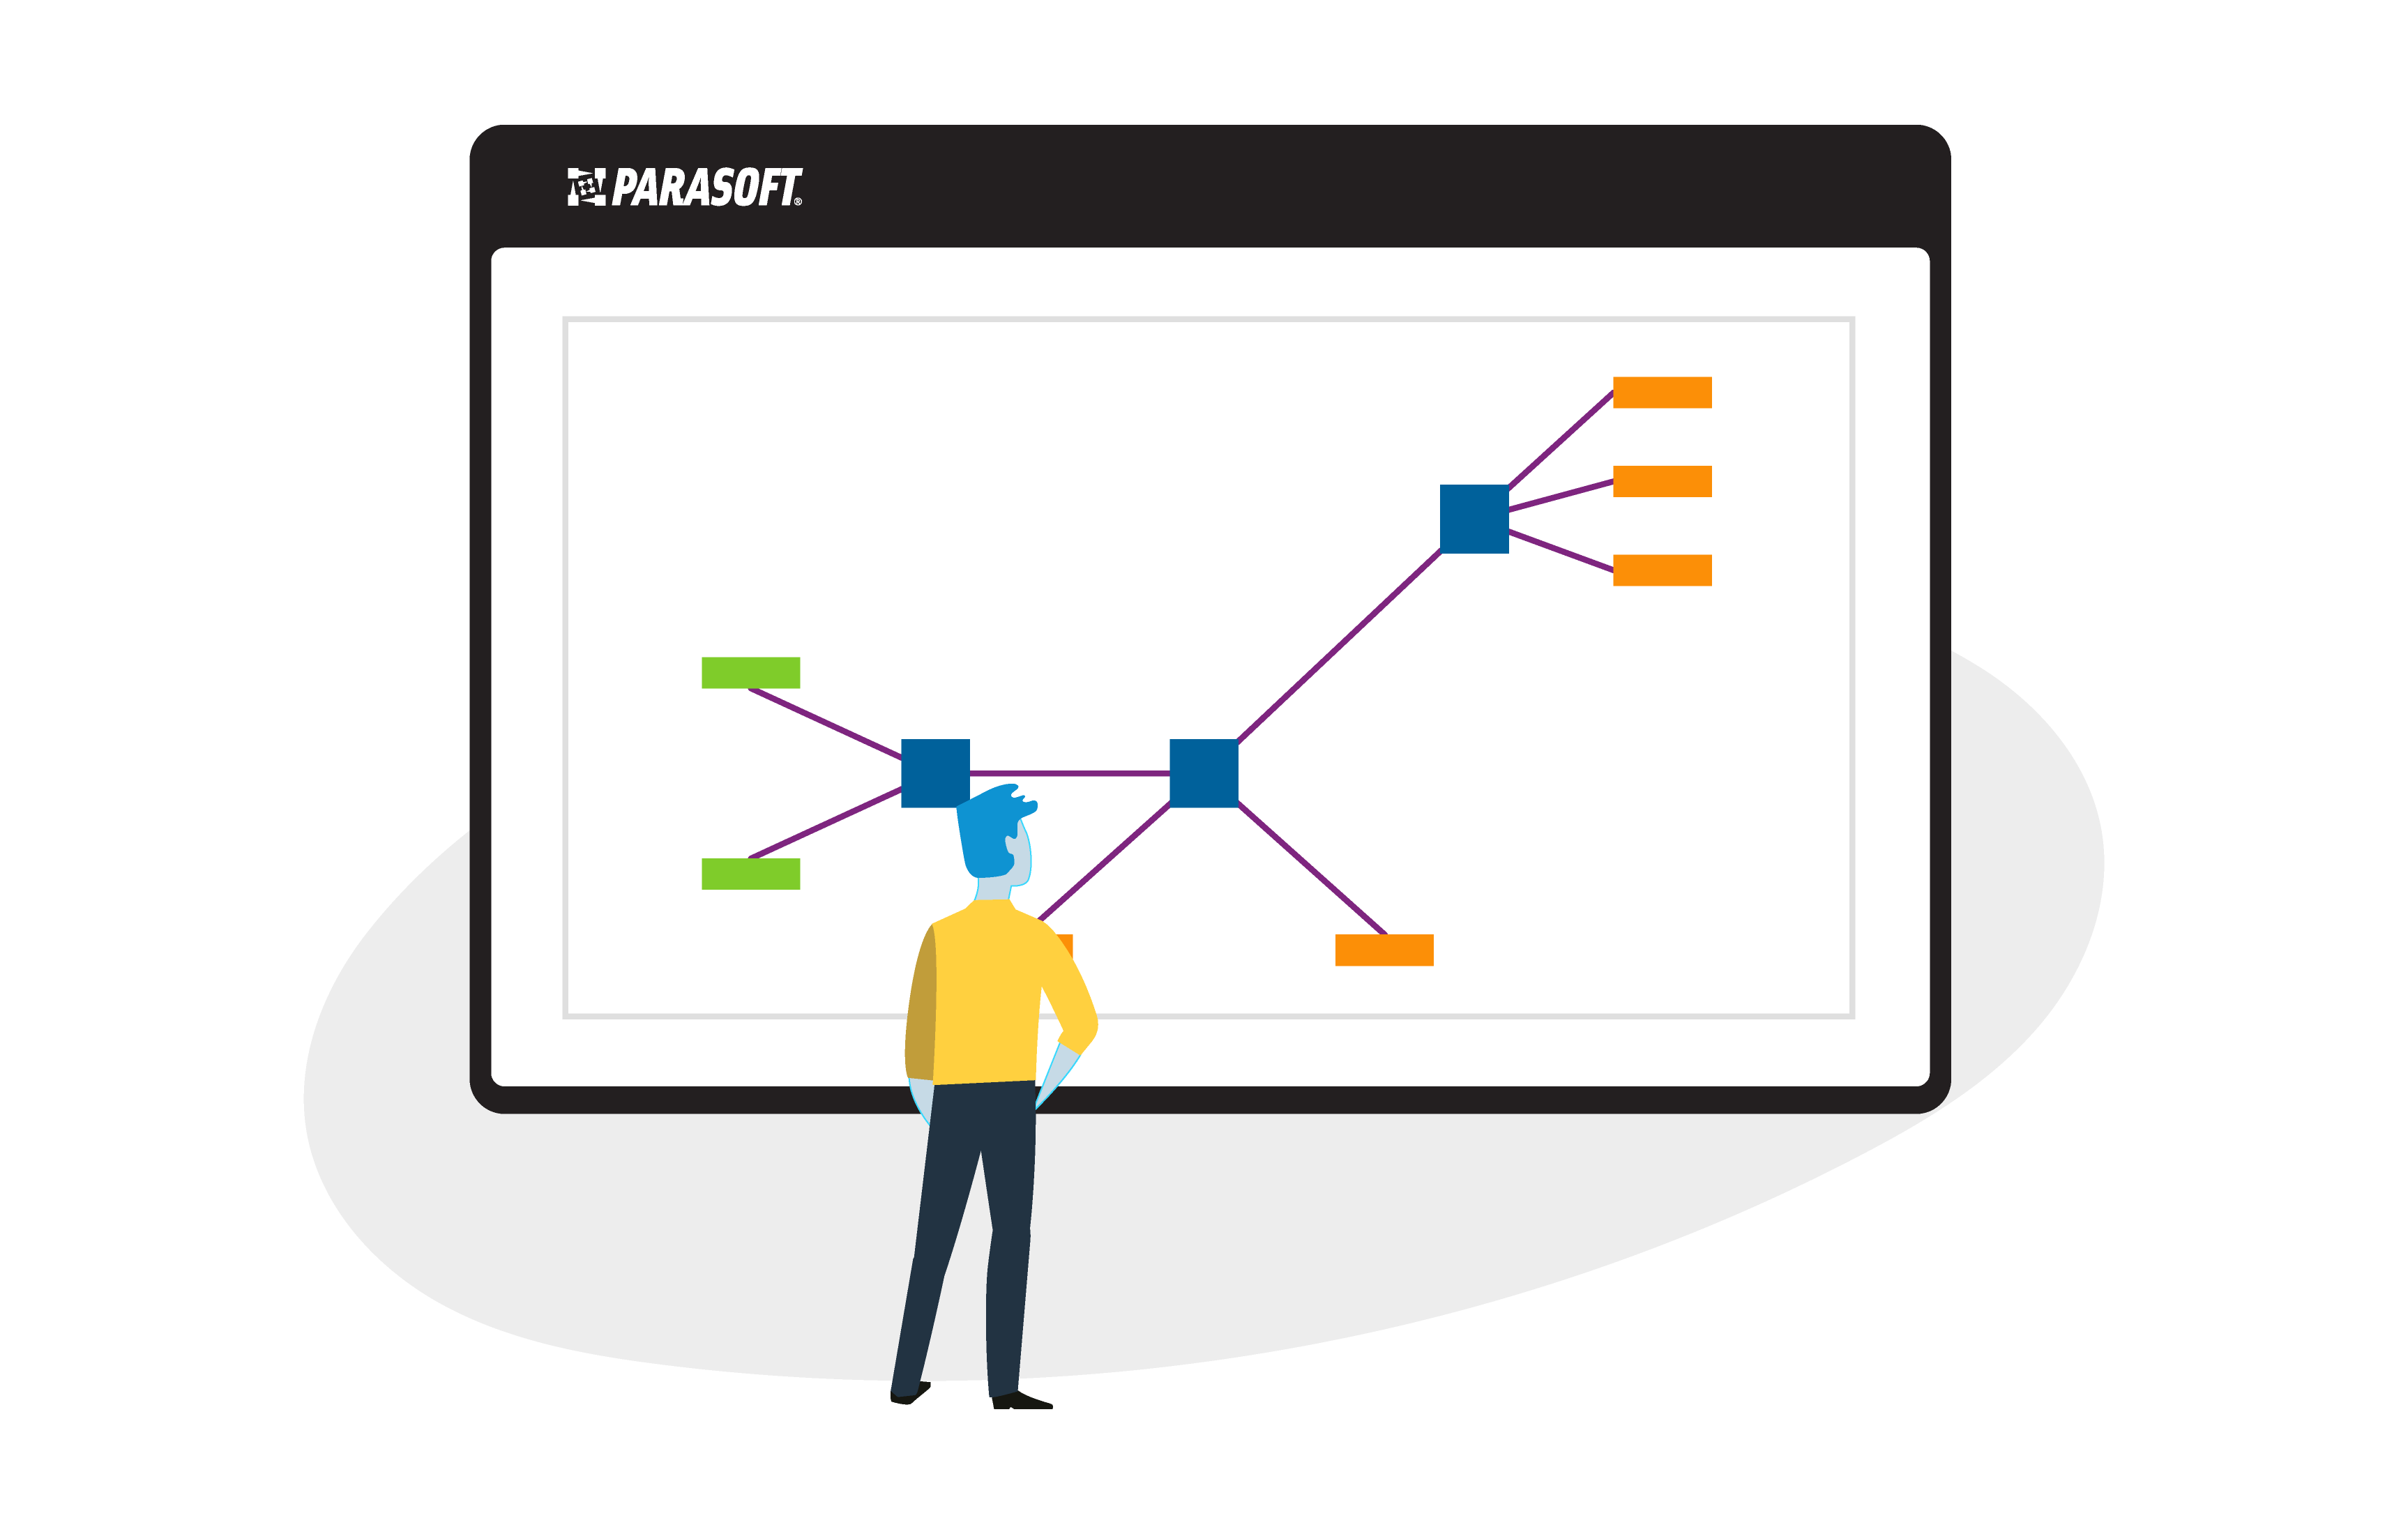 Parasoft_ProductIllustration_Intuitive, visual ways to understand data sources